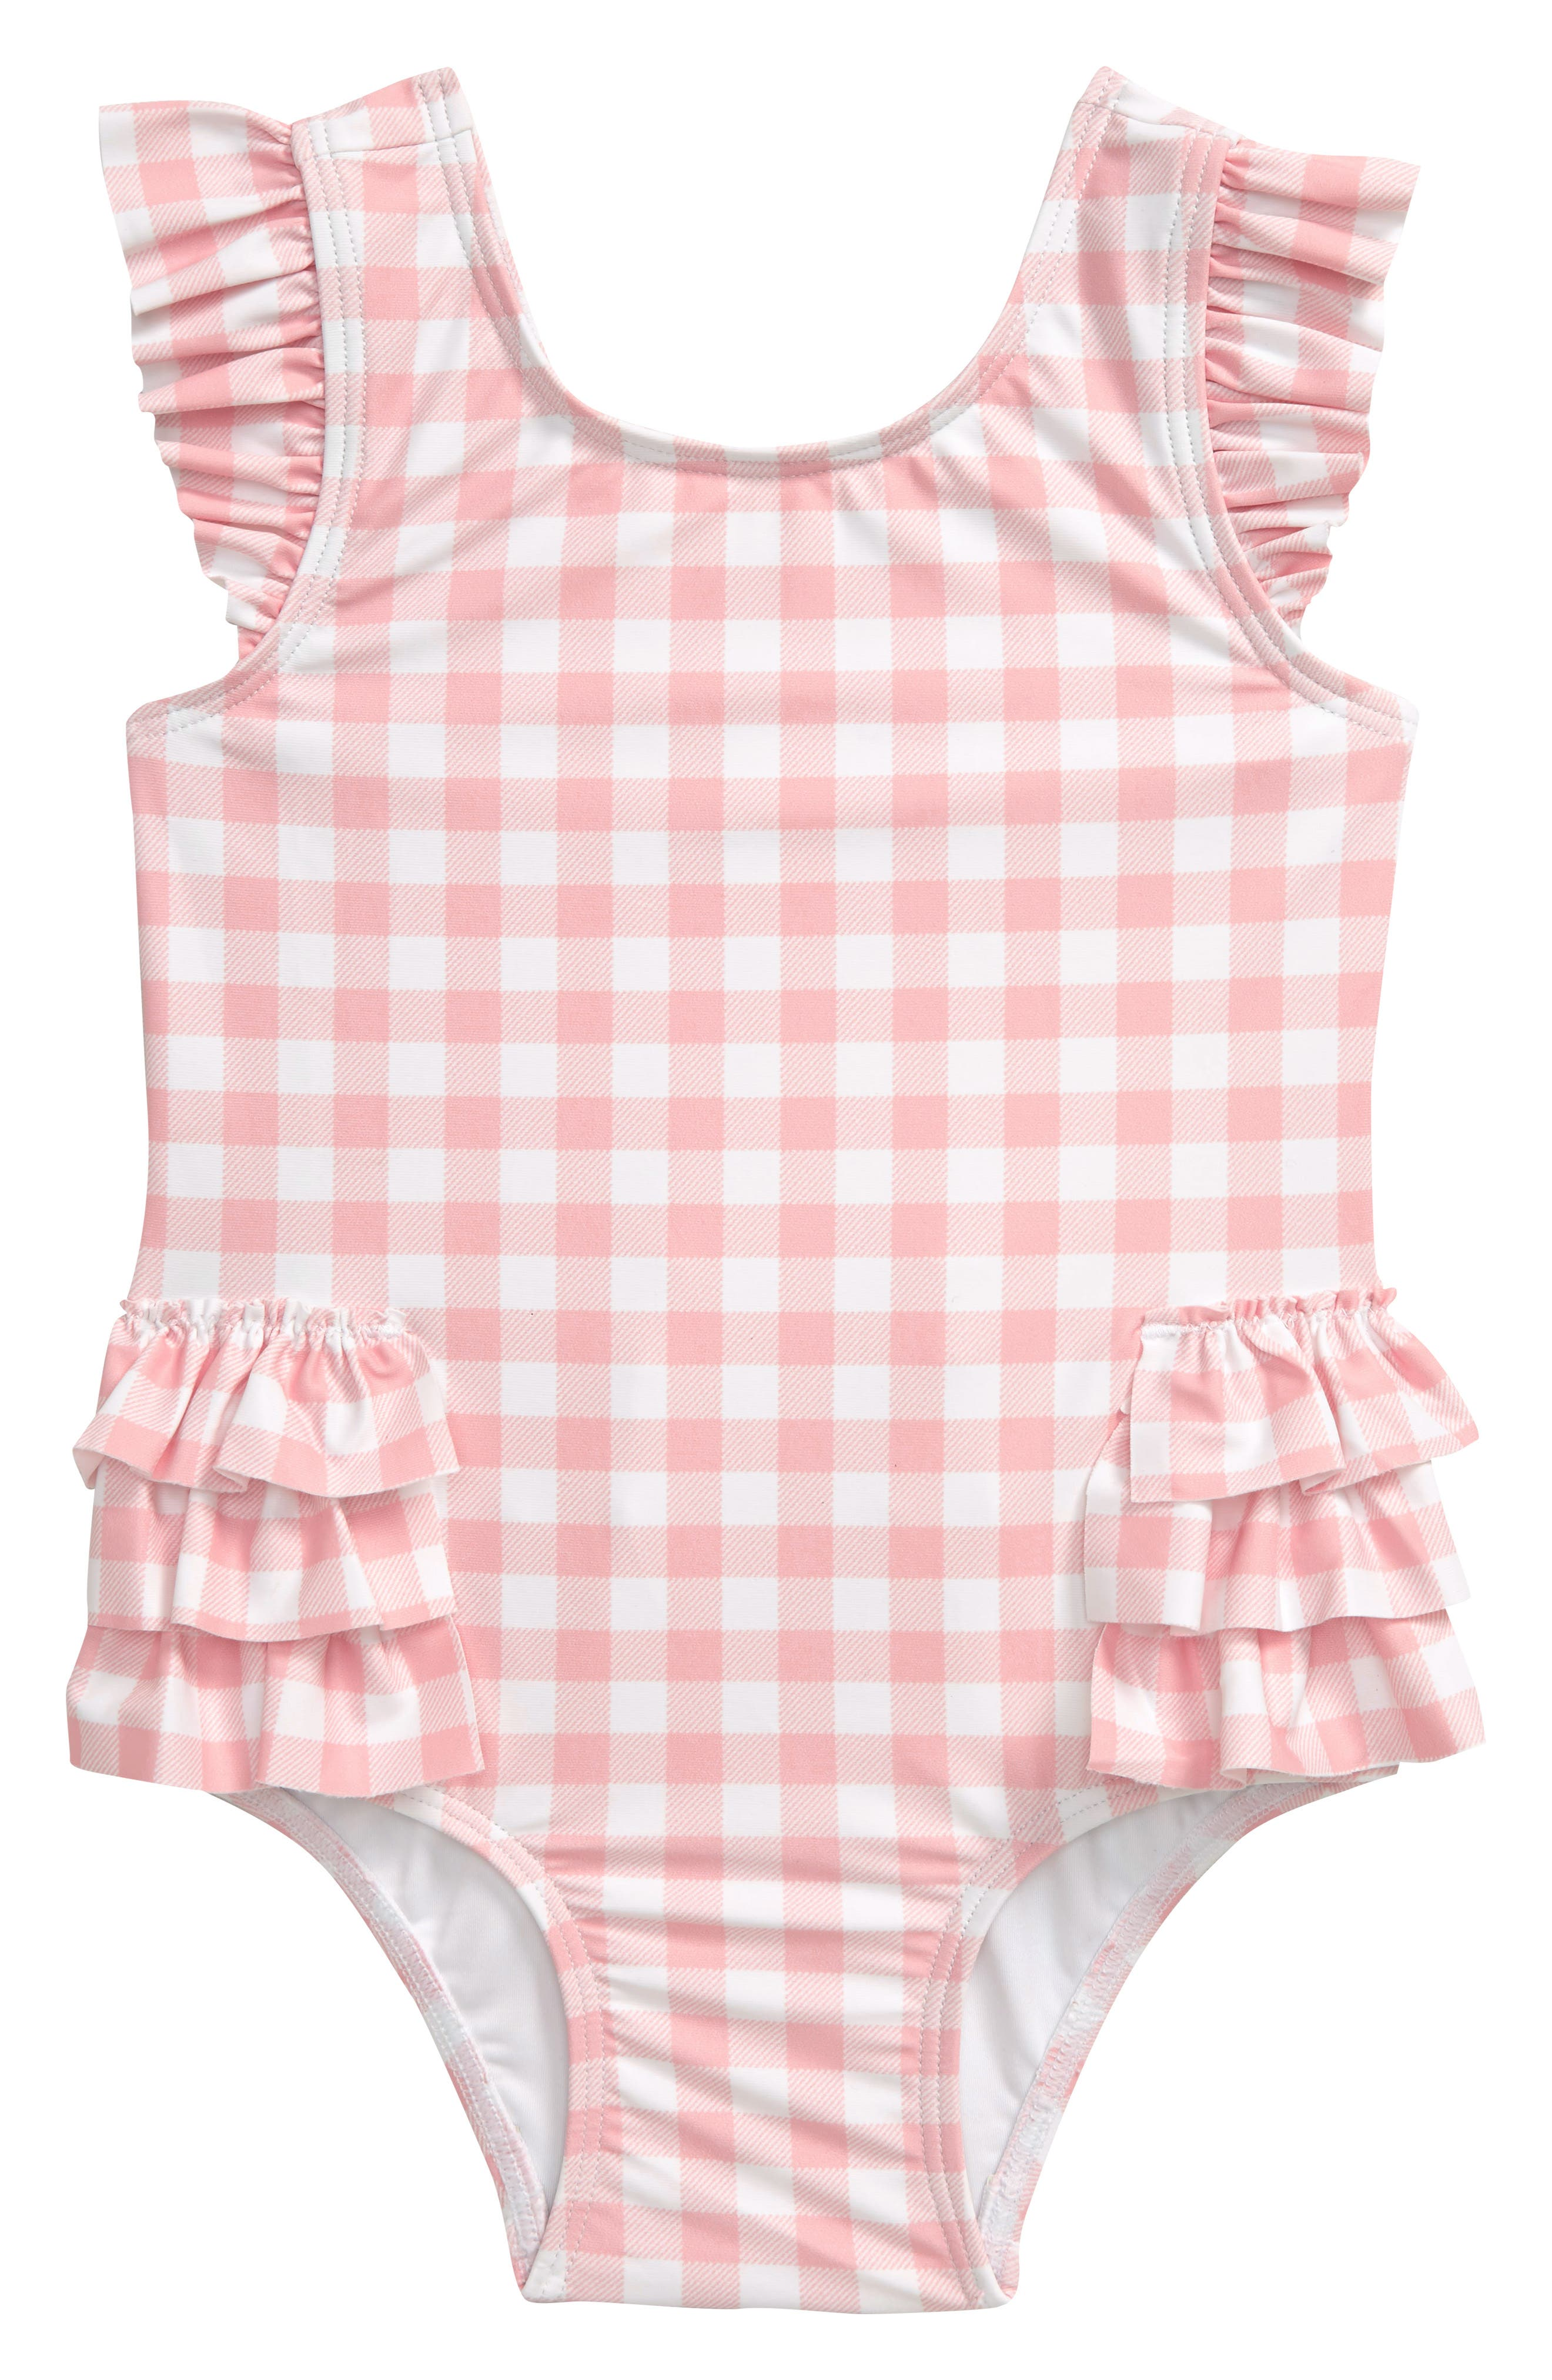 baby girl coming home outfit size 0-3m girl coming home outfit baby girl clothes 0-3 months baby girl take home outfit romper cheetah pink